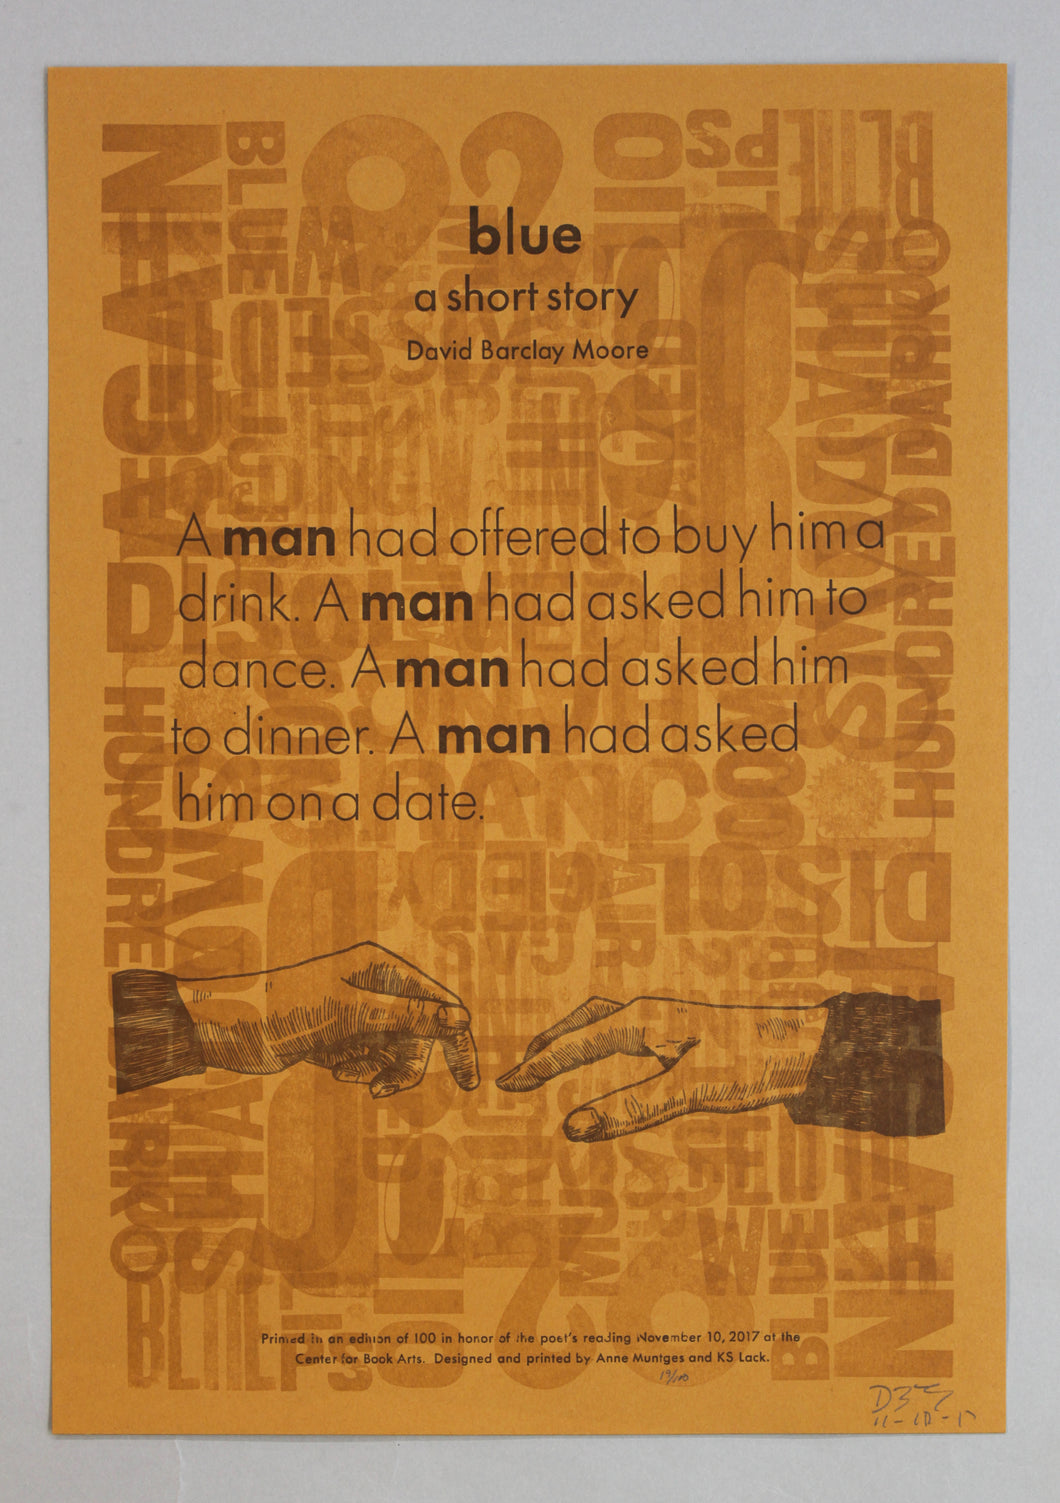 blue a short story by David Barclay Moore